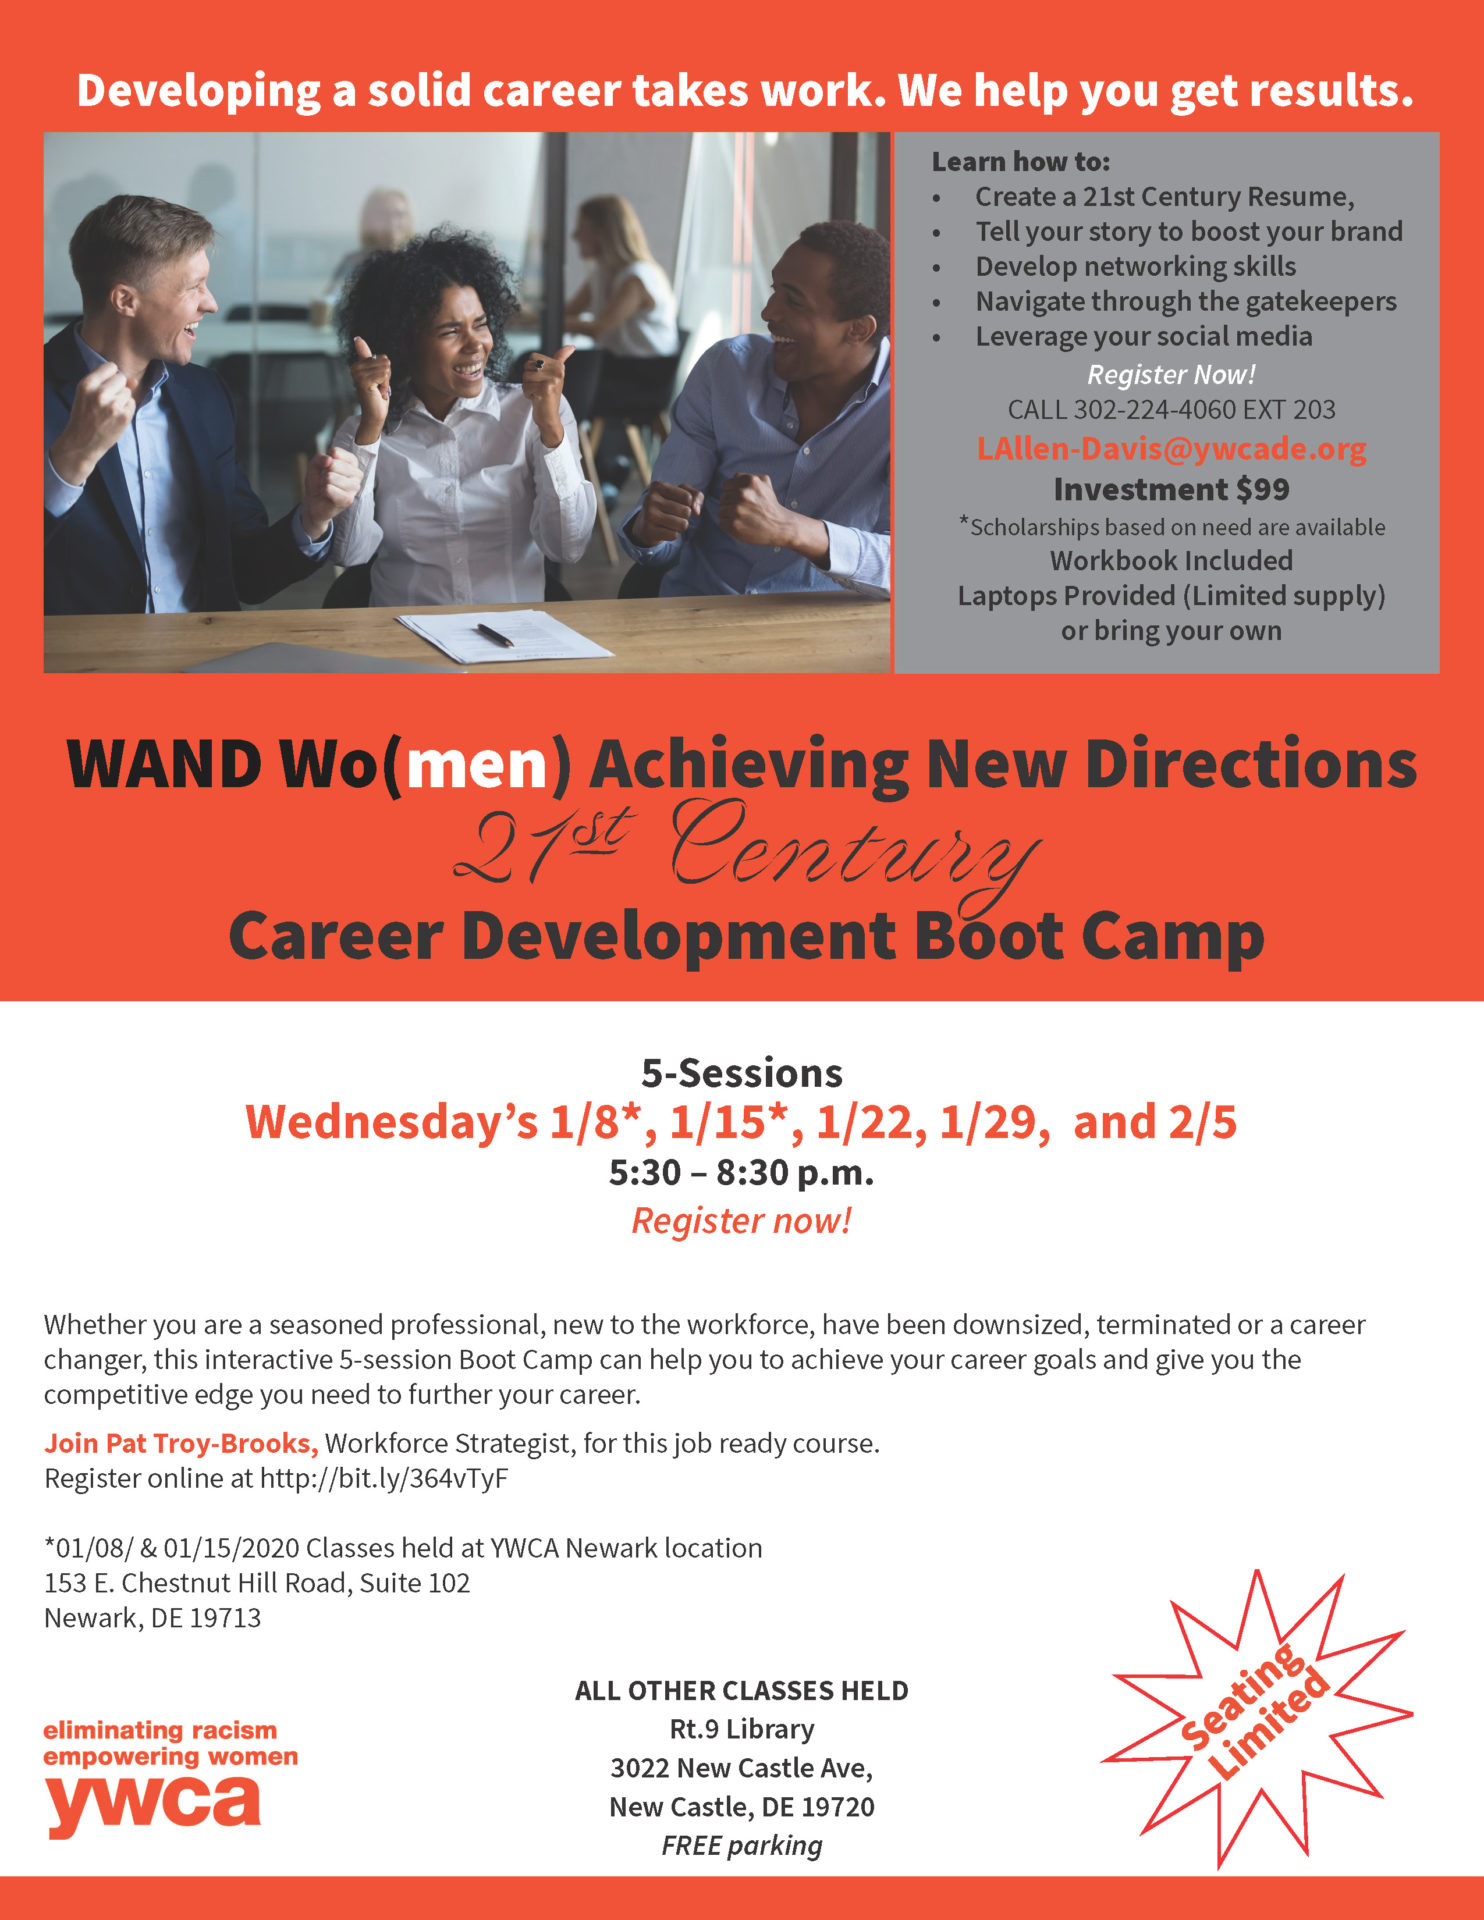 21 Century Career Development Flyer